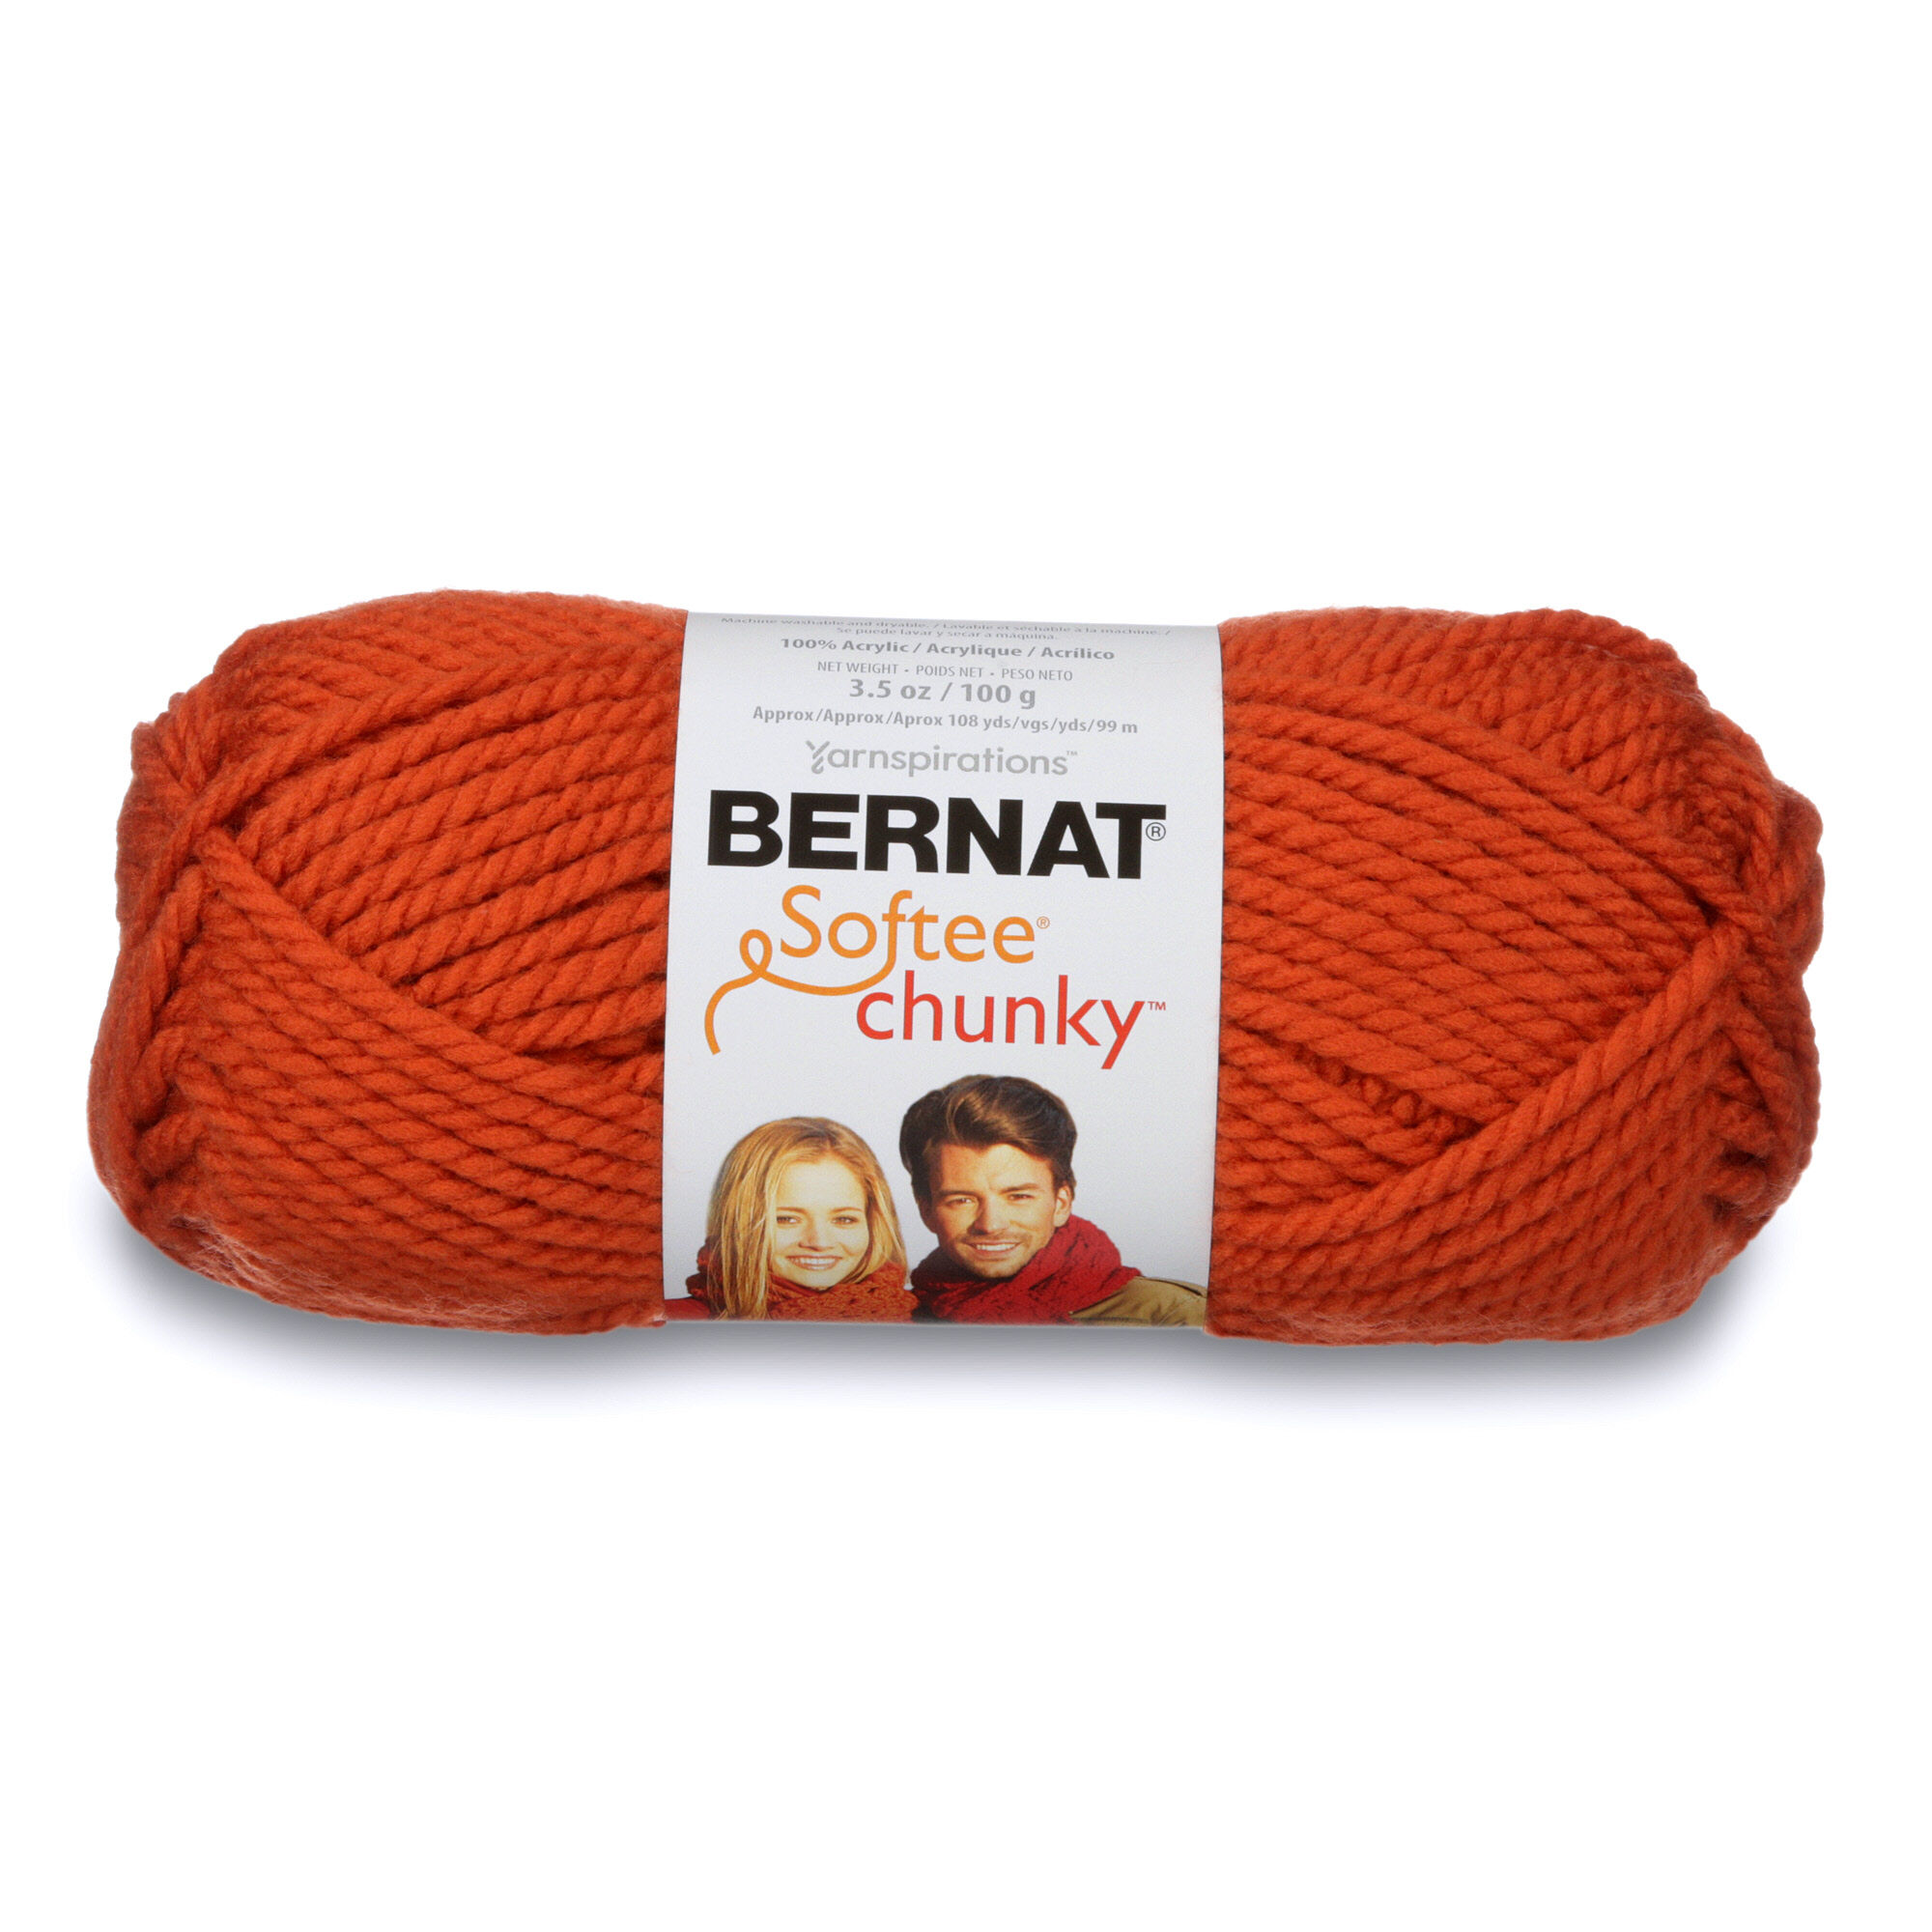 Bernat Softee Chunky Yarn (100g/3.5oz), Pumpkin